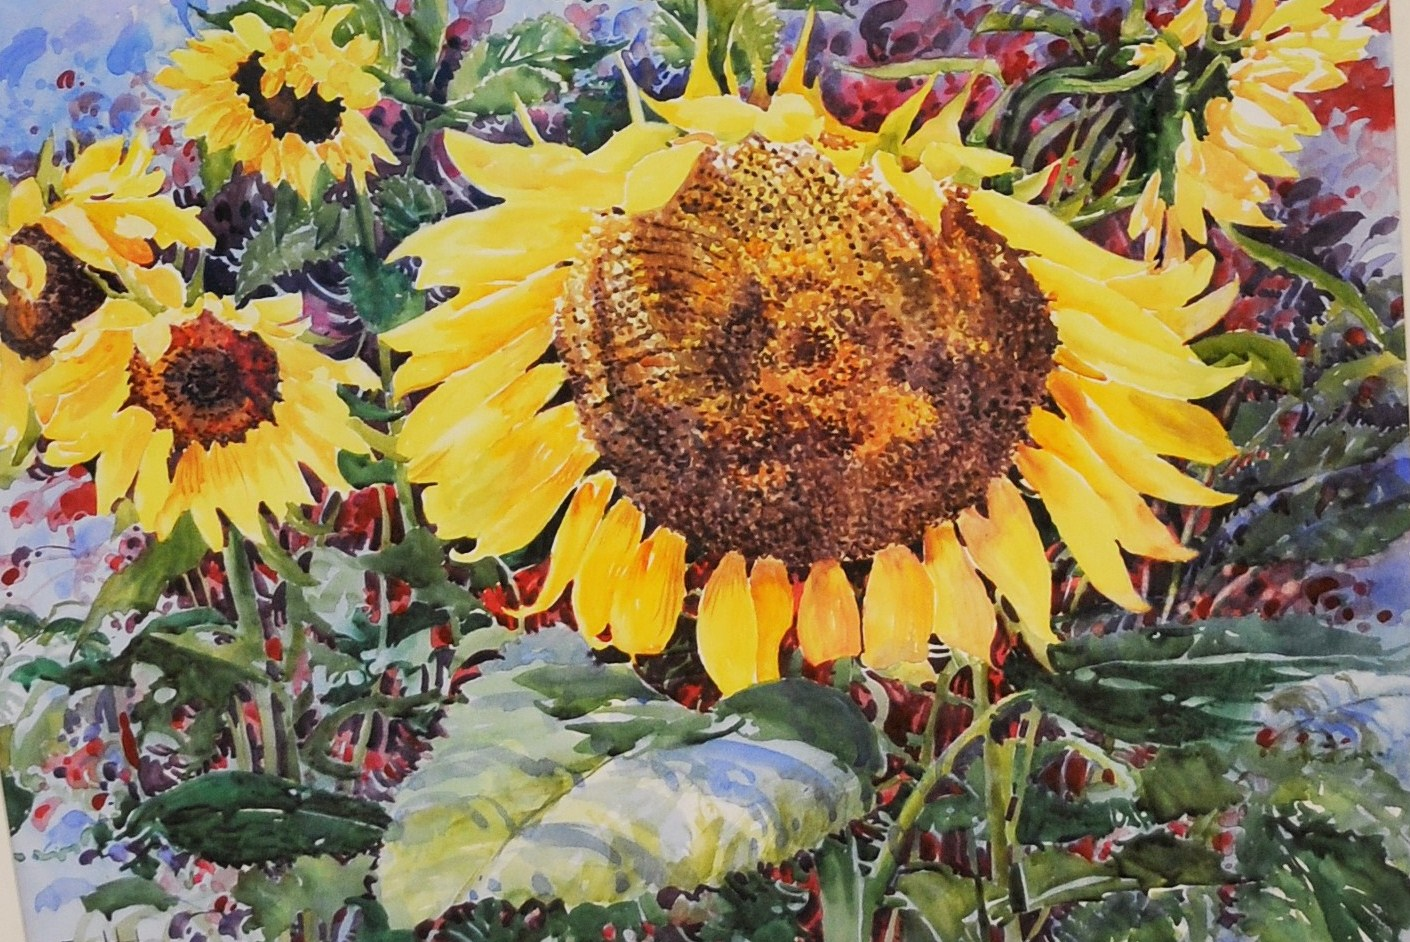 Sunflowers II by Erica Hoyt